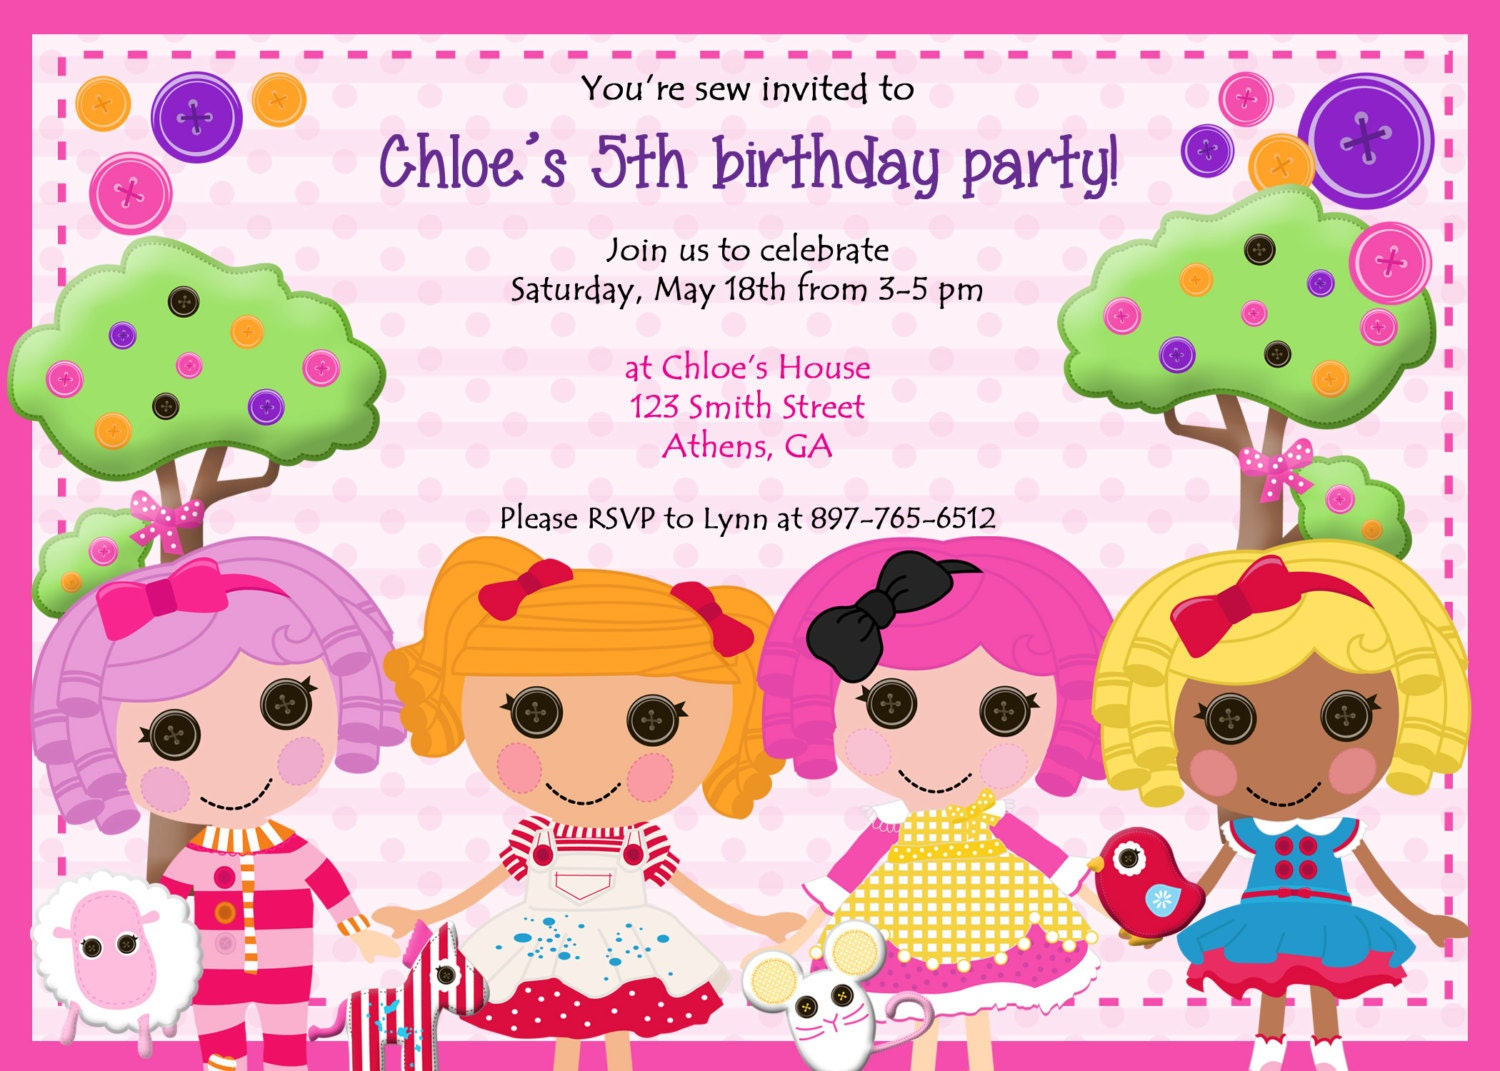 Lalaloopsy Invitations for best invitations layout